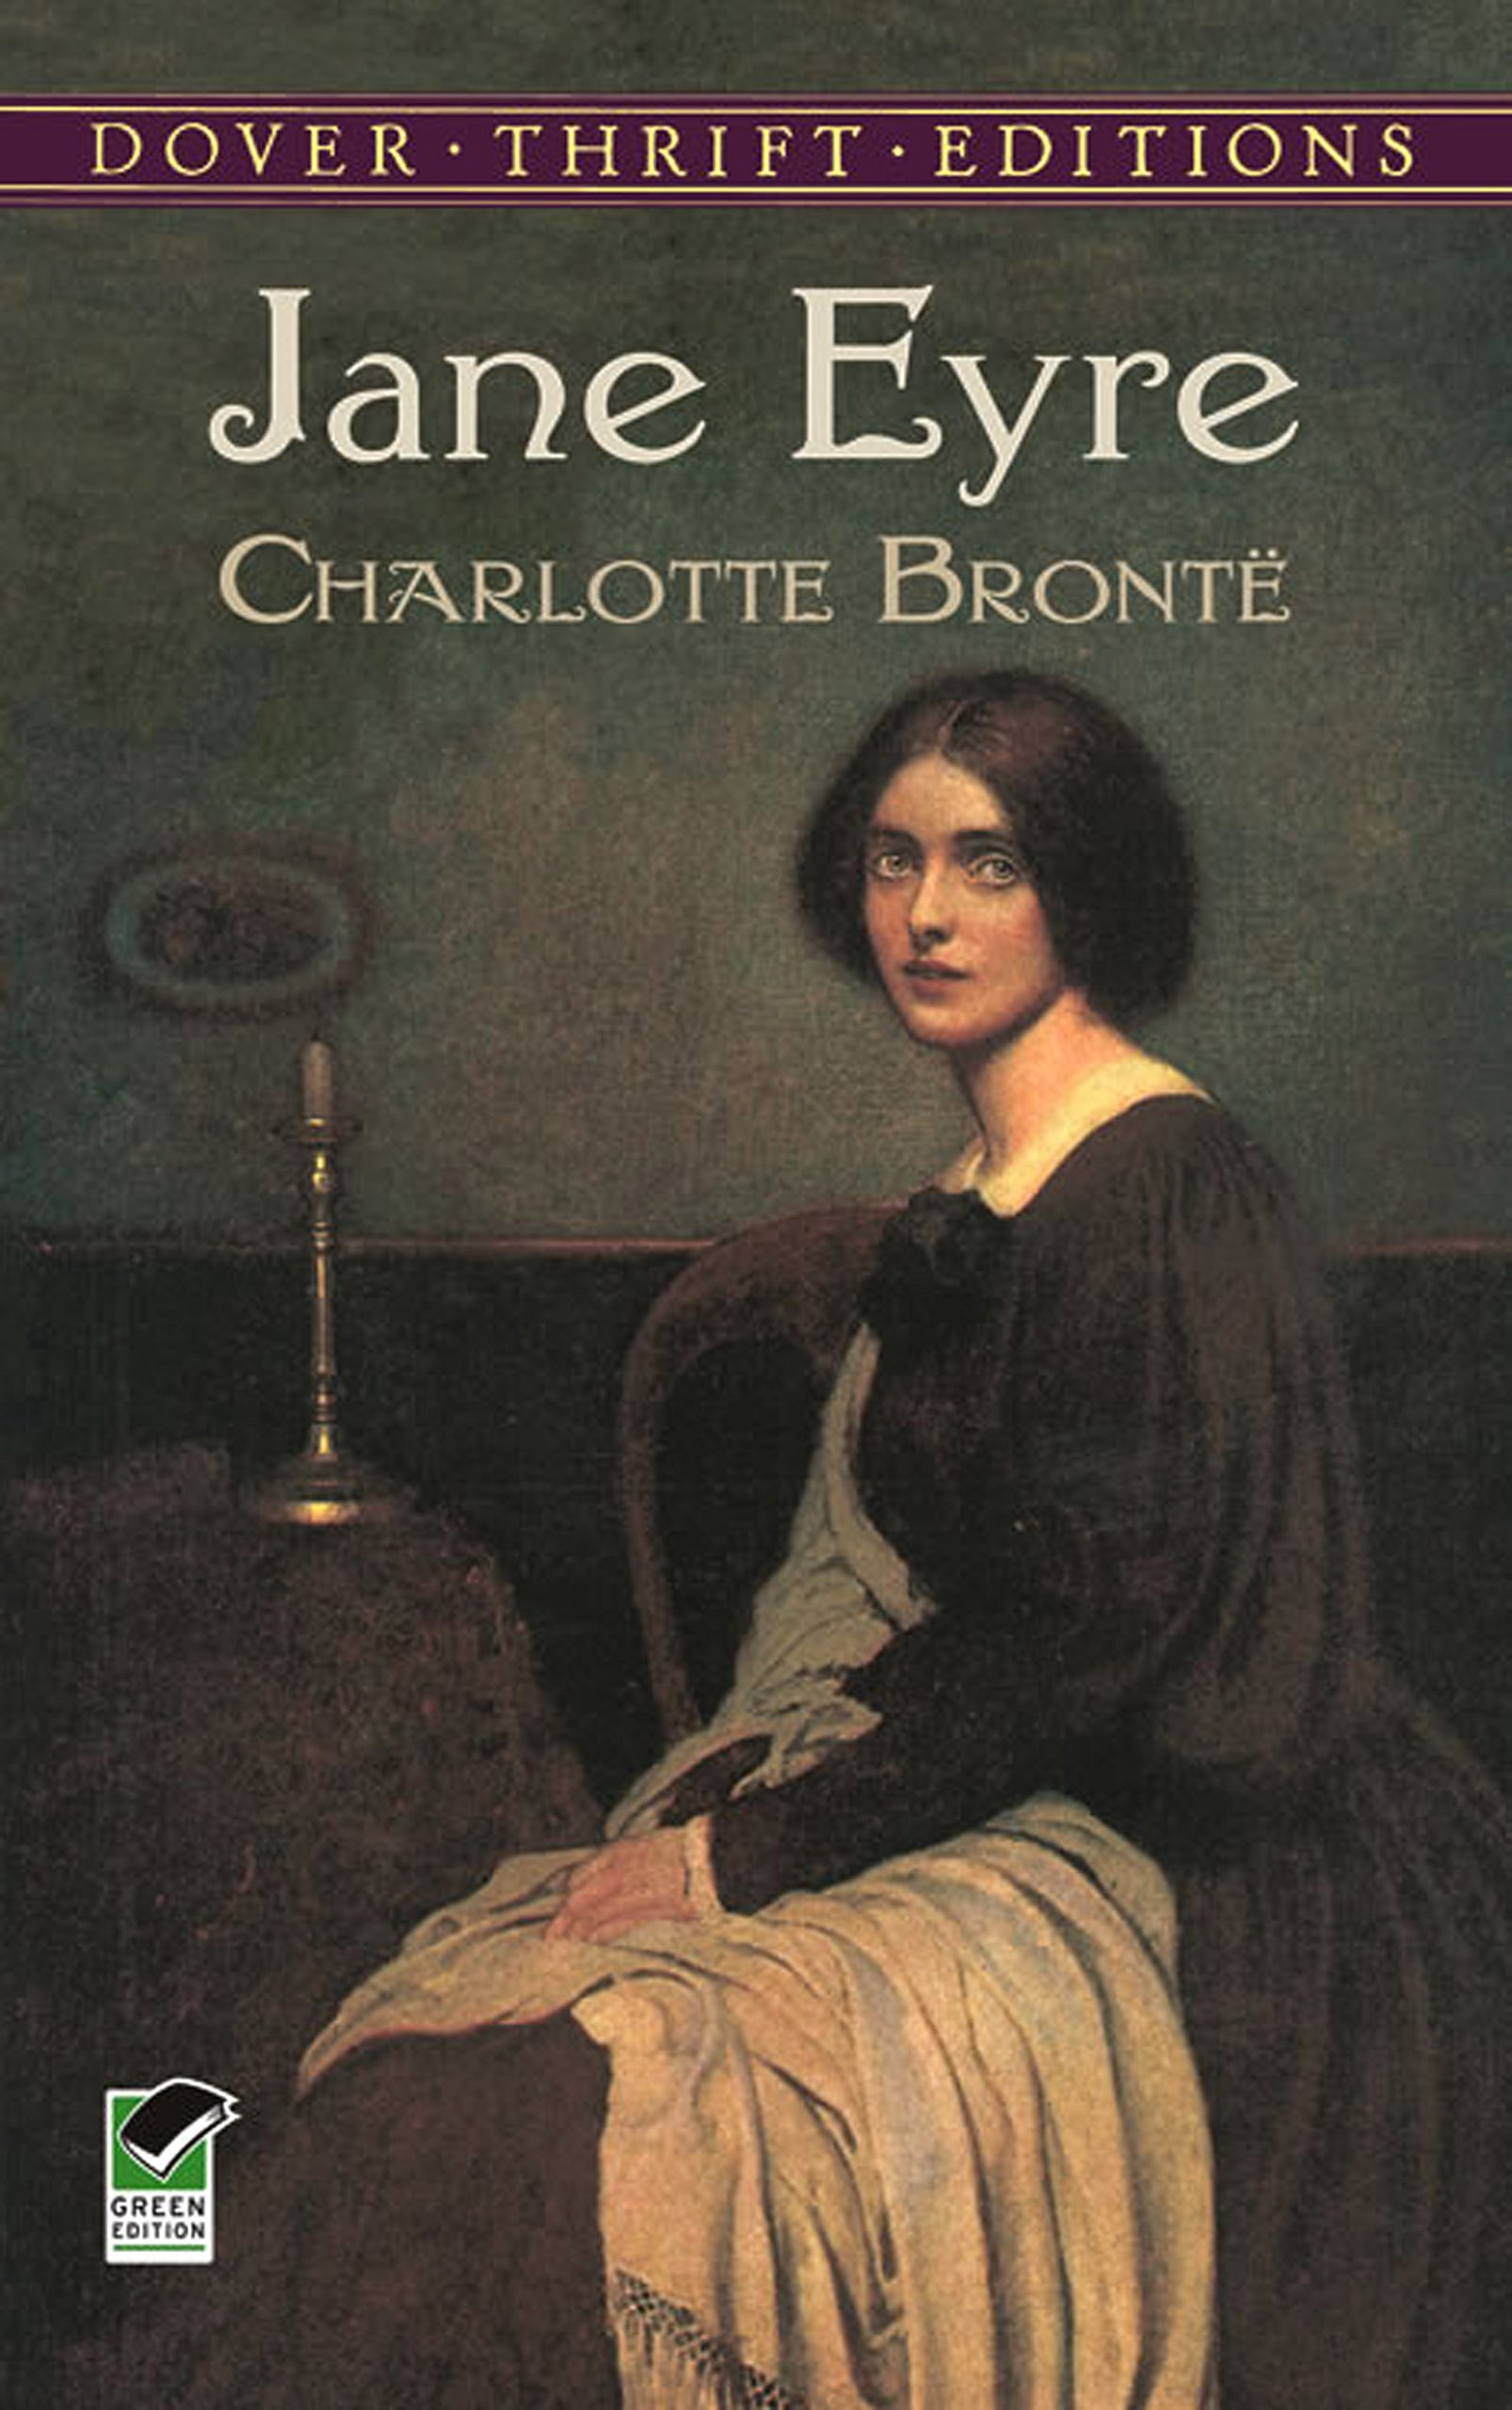 essays on jane eyre jane eyre dover thrift editions charlotte  jane eyre dover thrift editions charlotte bront euml jane eyre dover thrift editions charlotte bronteuml 9780486424491